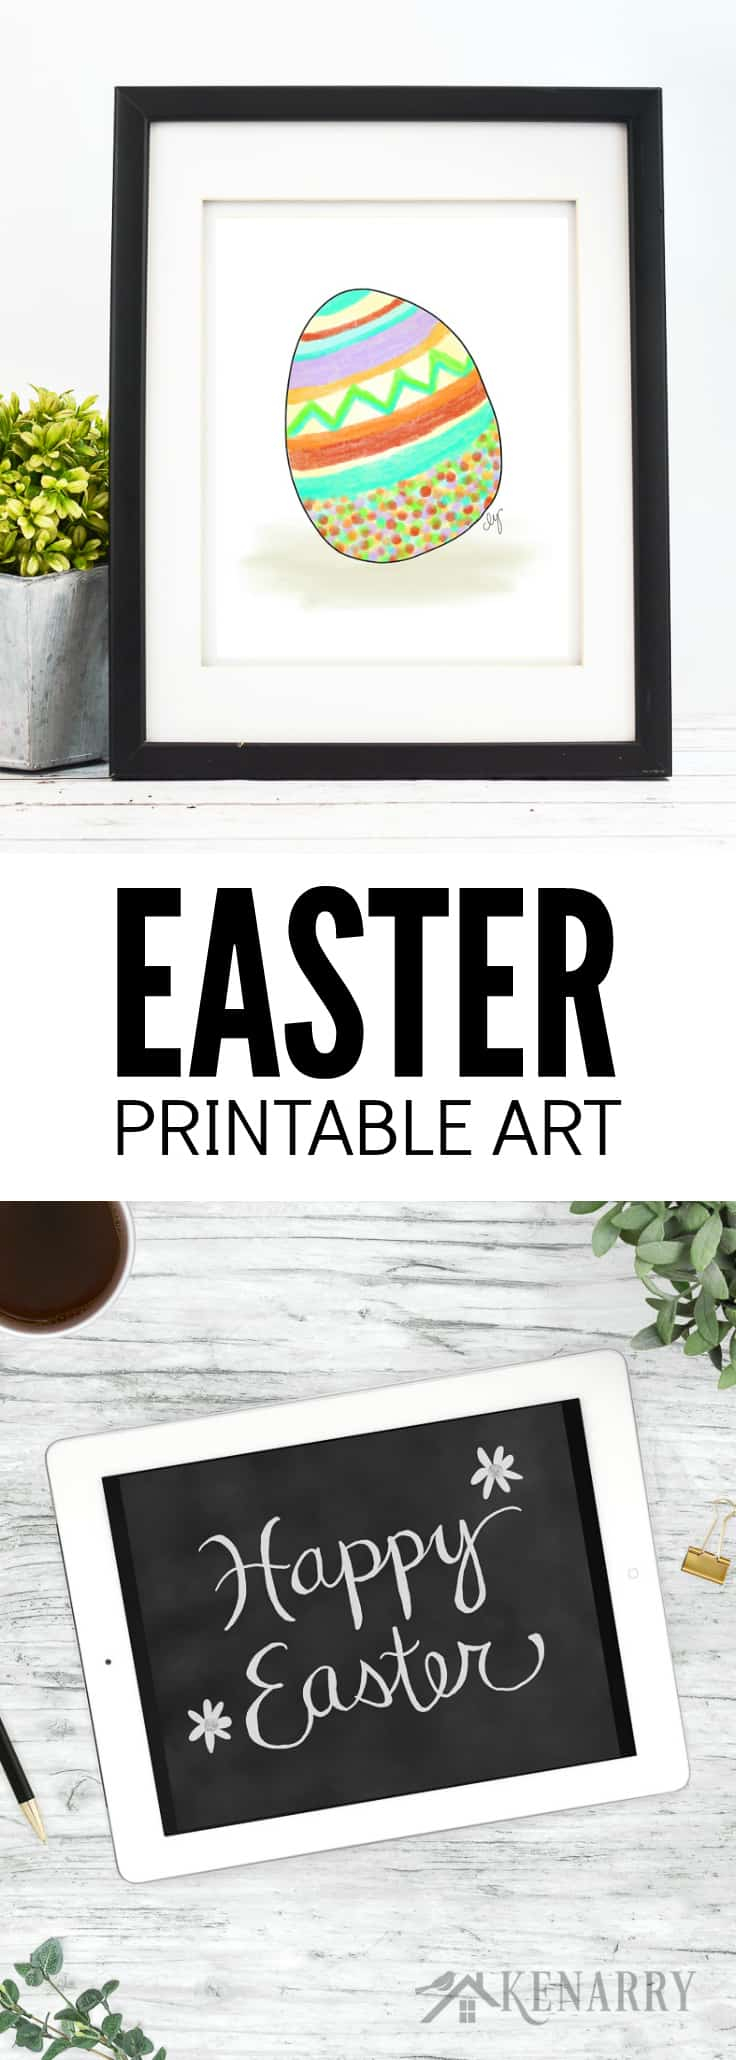 This printable Easter art helps you easily update your walls with spring home decor. The collection includes Easter egg art, a Happy Easter chalkboard print, carrots, an Easter bunny print and other spring prints.